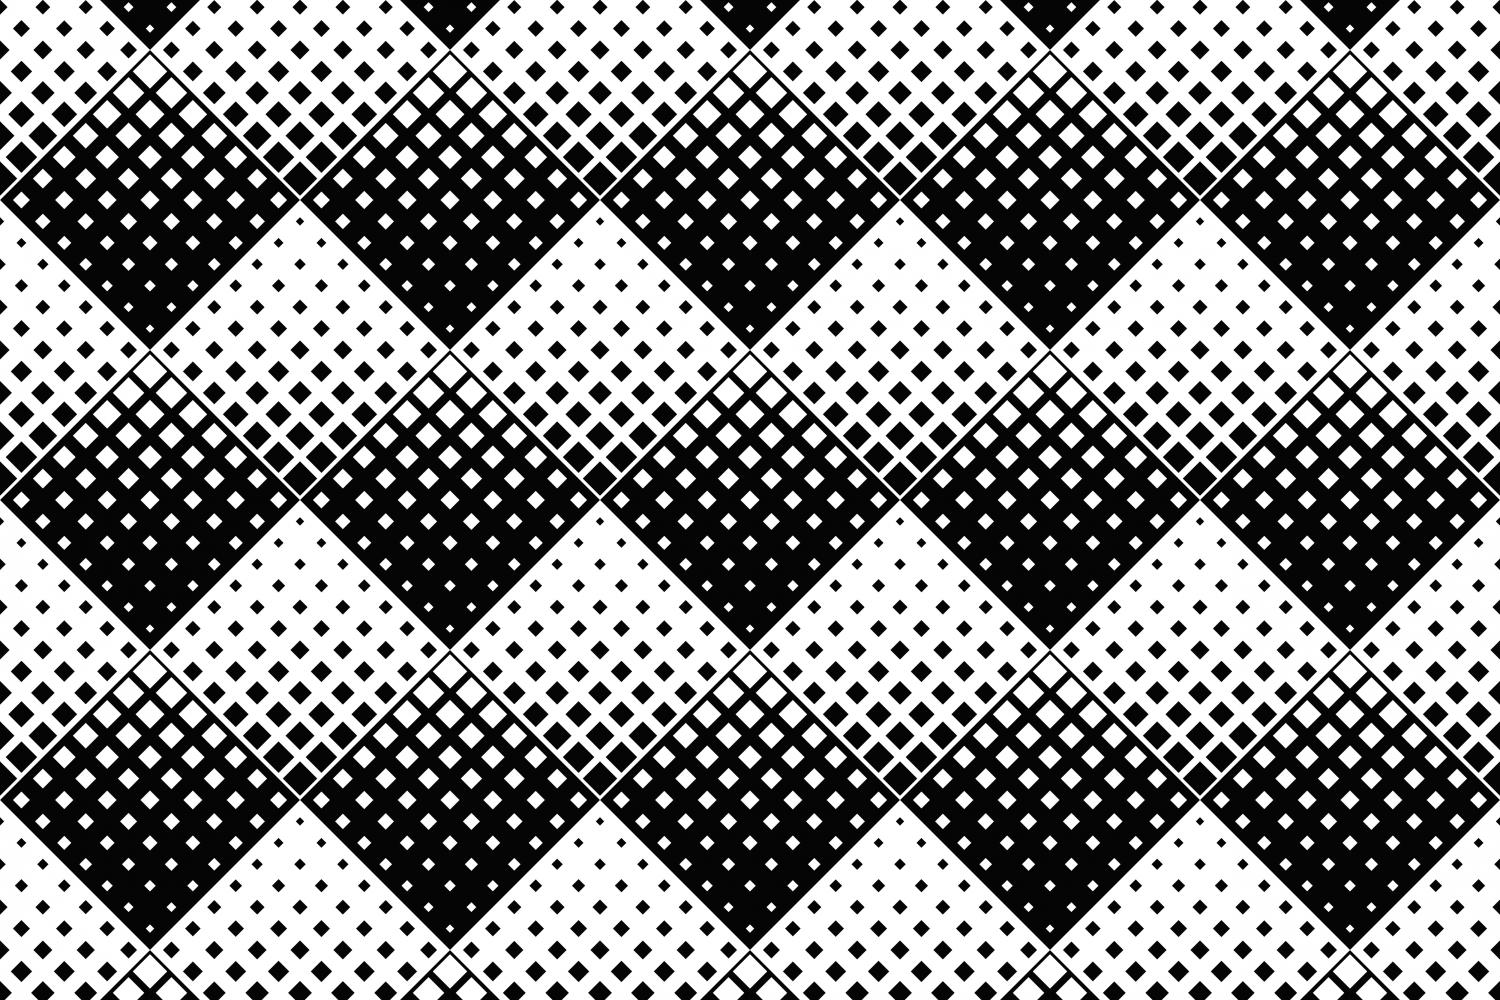 24 Seamless Square Patterns example image 21